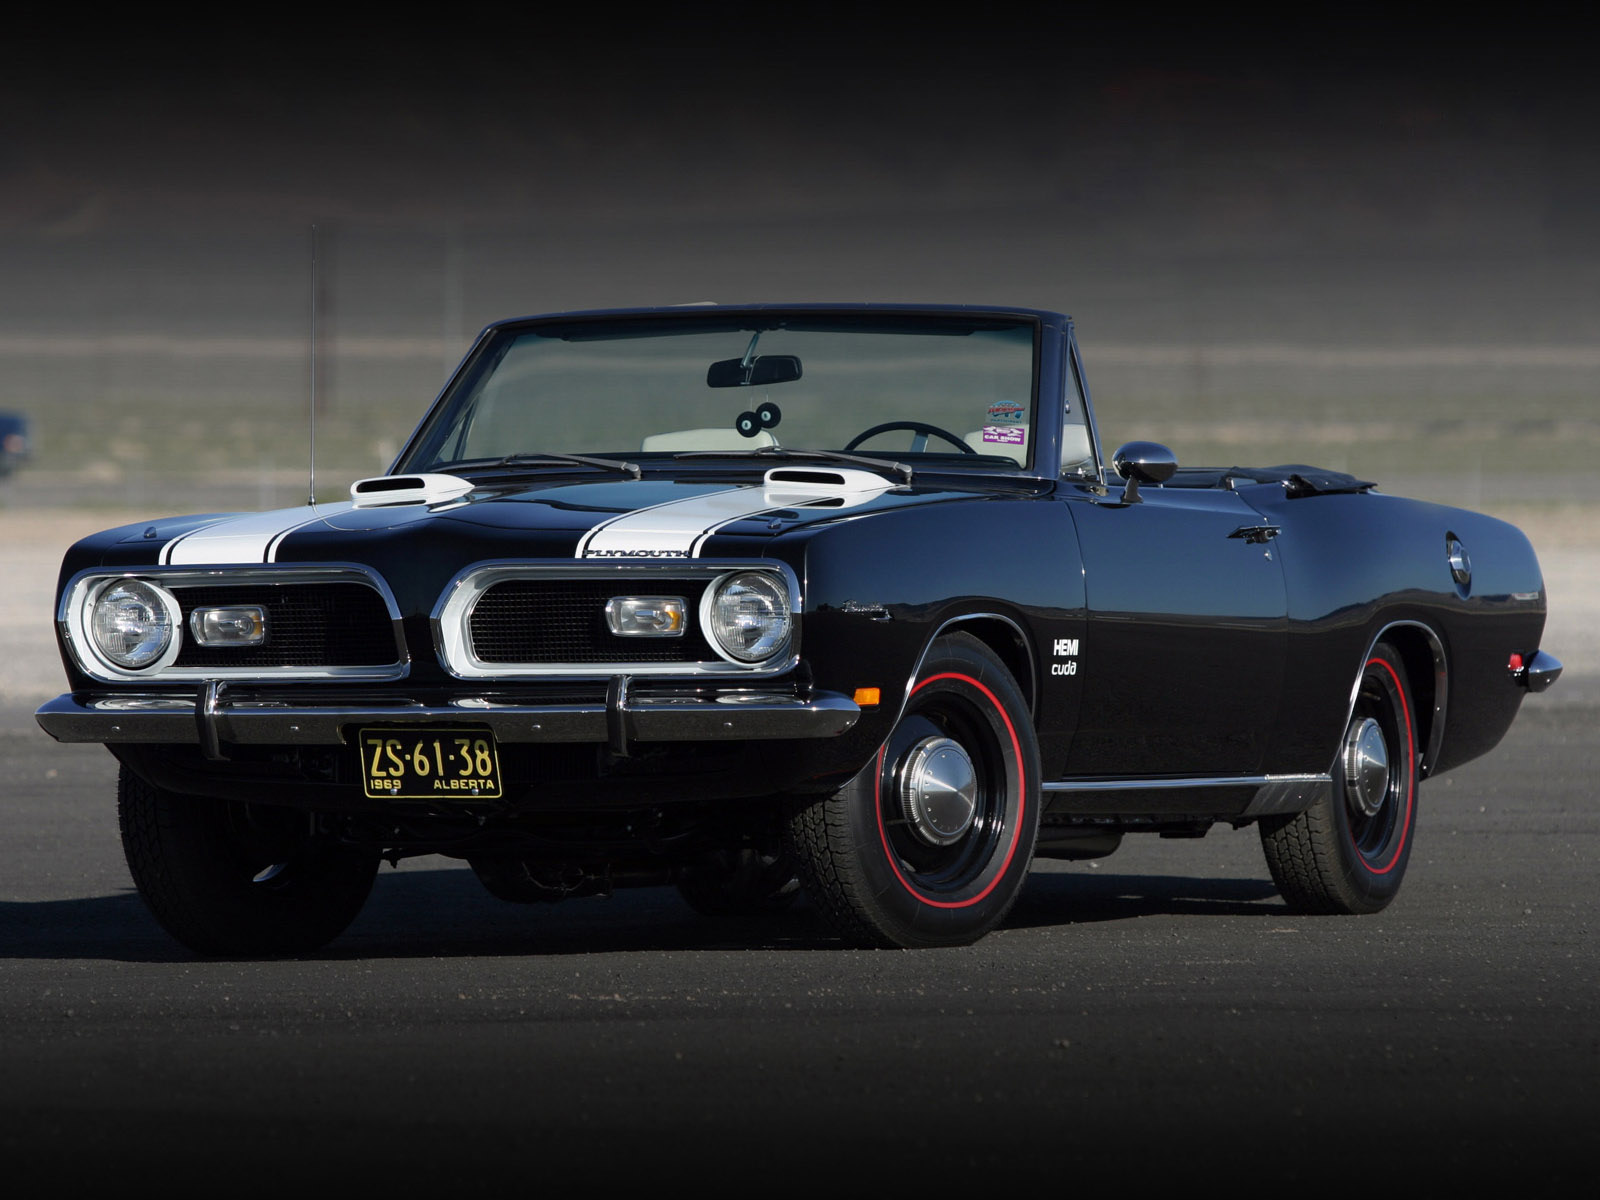 Plymouth Barracuda Classic Car Classic muscle wallpaper 1600x1200 1600x1200